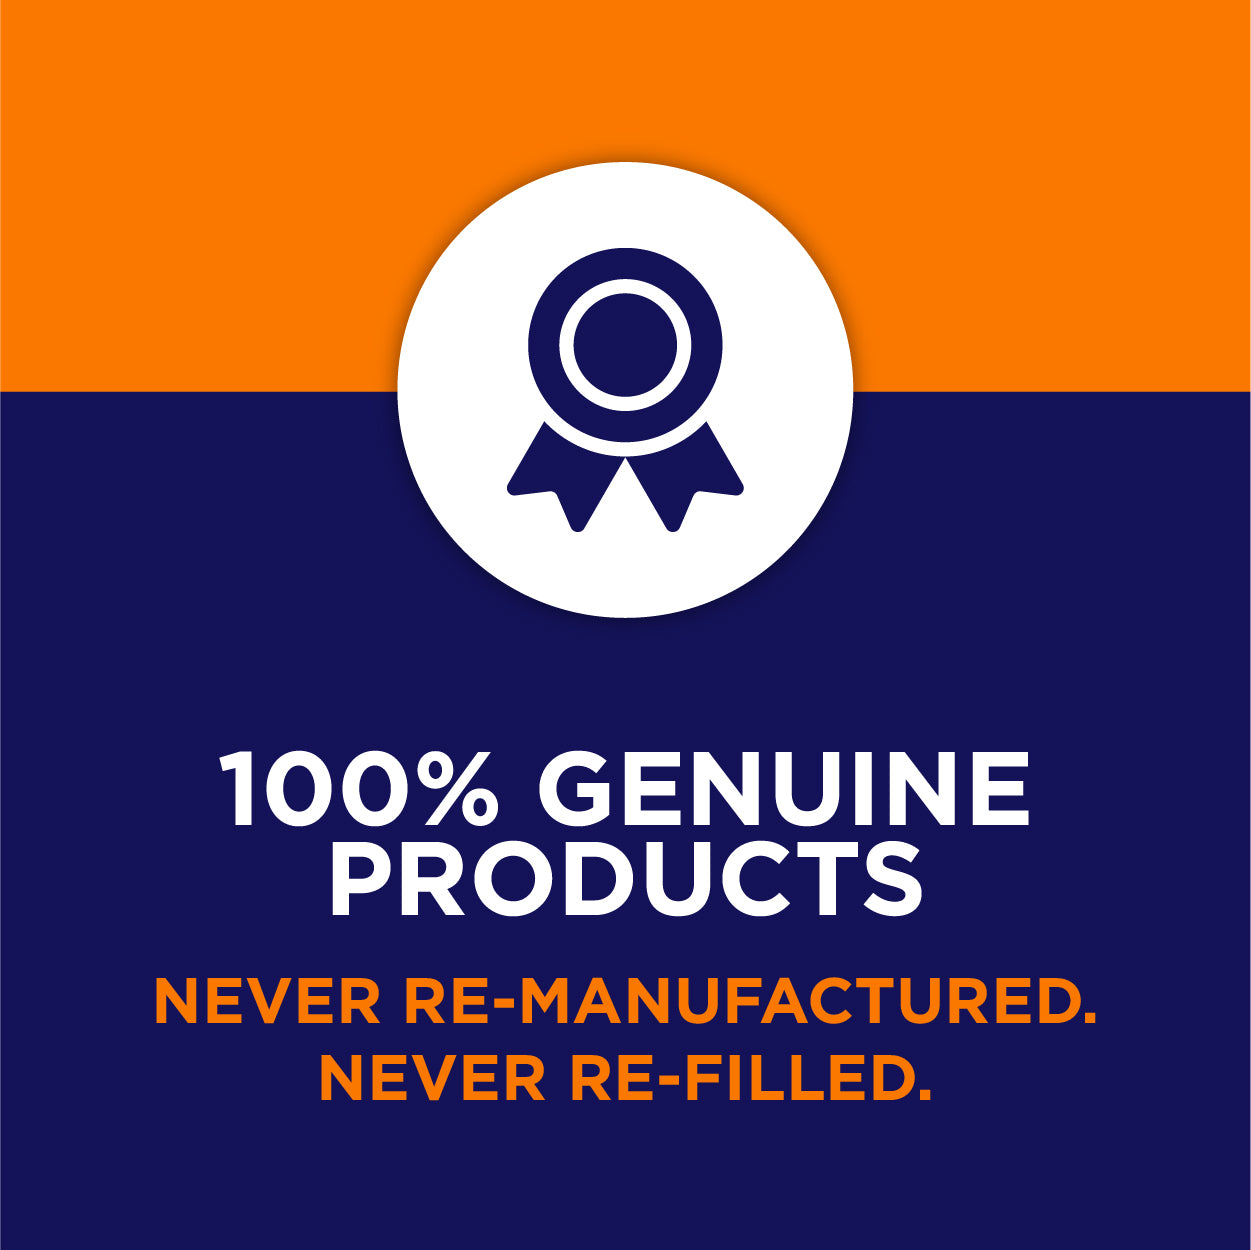 Never Re-manufactured, Never refilled